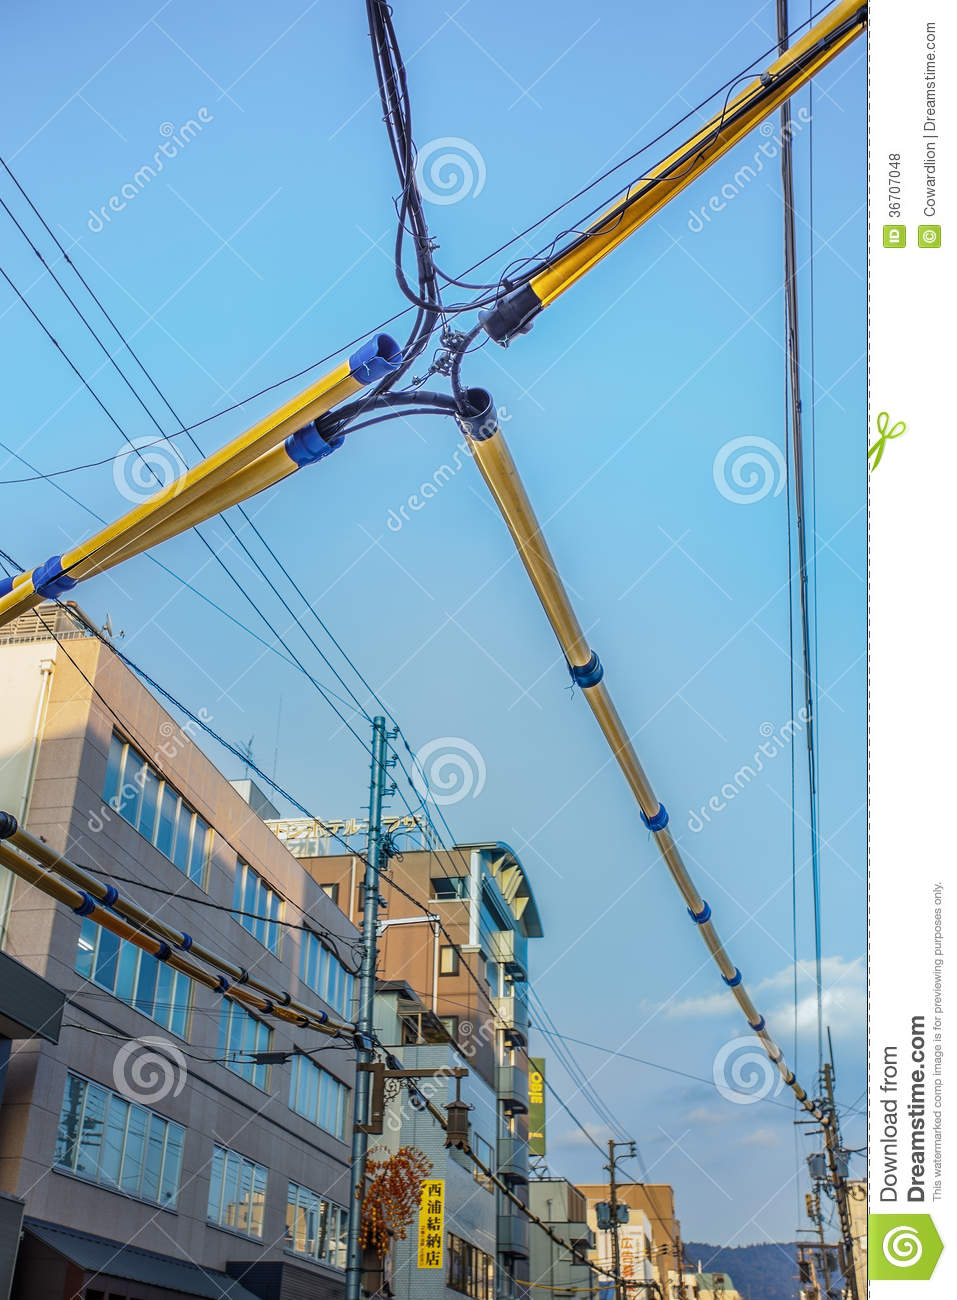 hight resolution of special treated cover for electrical and telephone line wiring protecting from weather at sanjo dori street